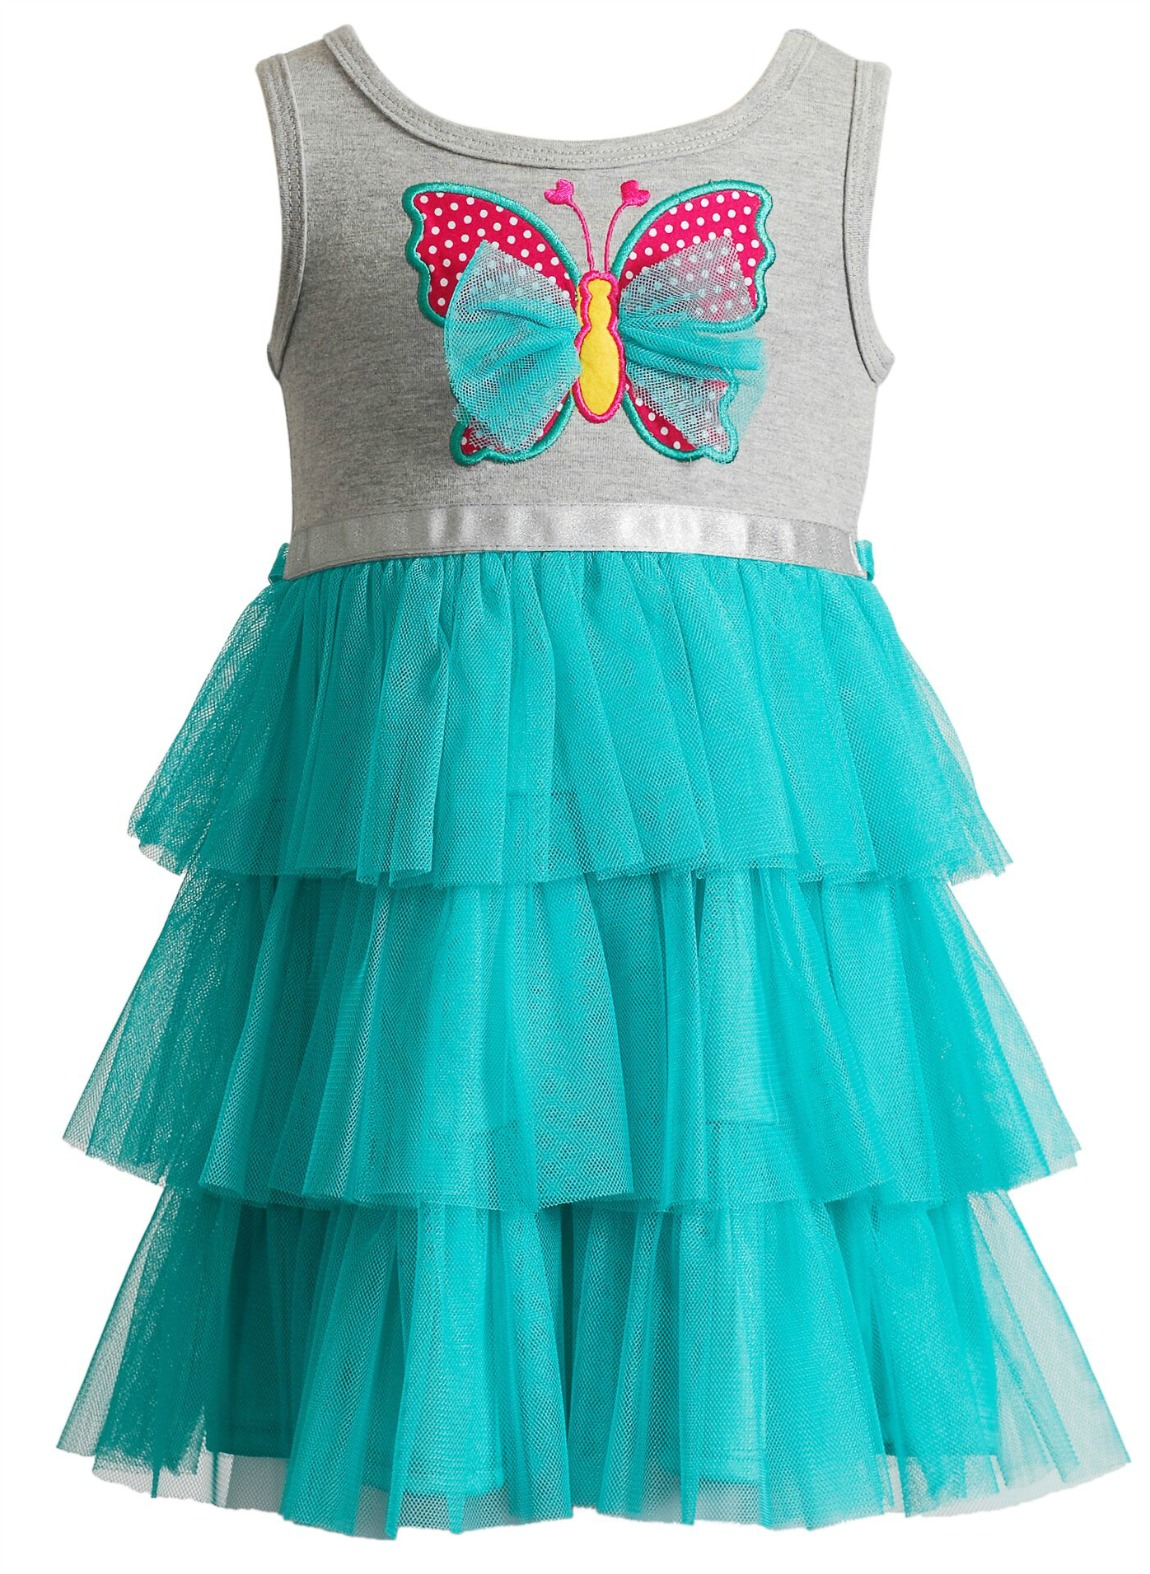 Youngland Infant Girls Gray Butterfly Tutu Dress 18 months